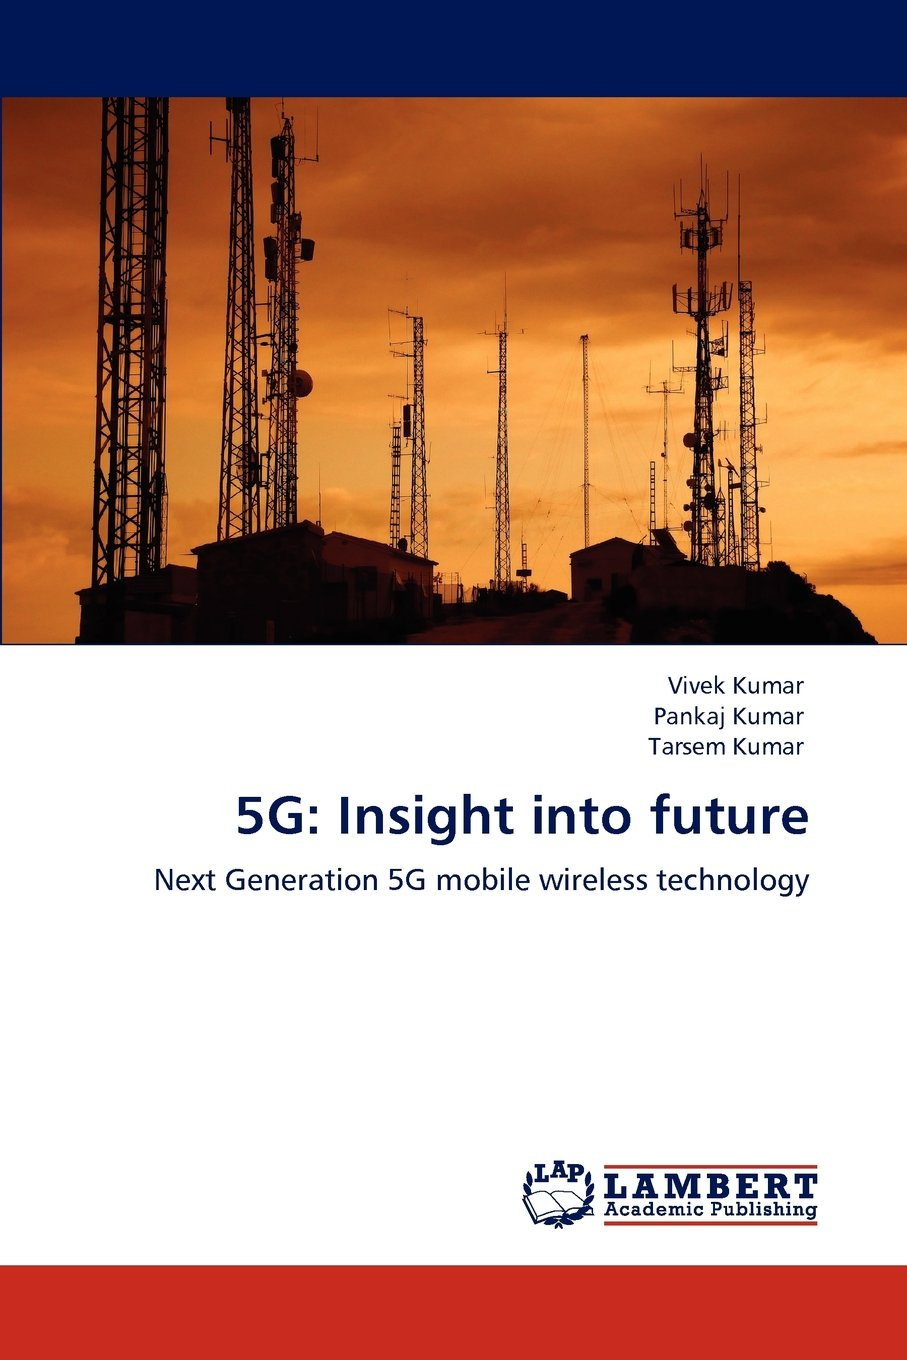 5G: Insight into future